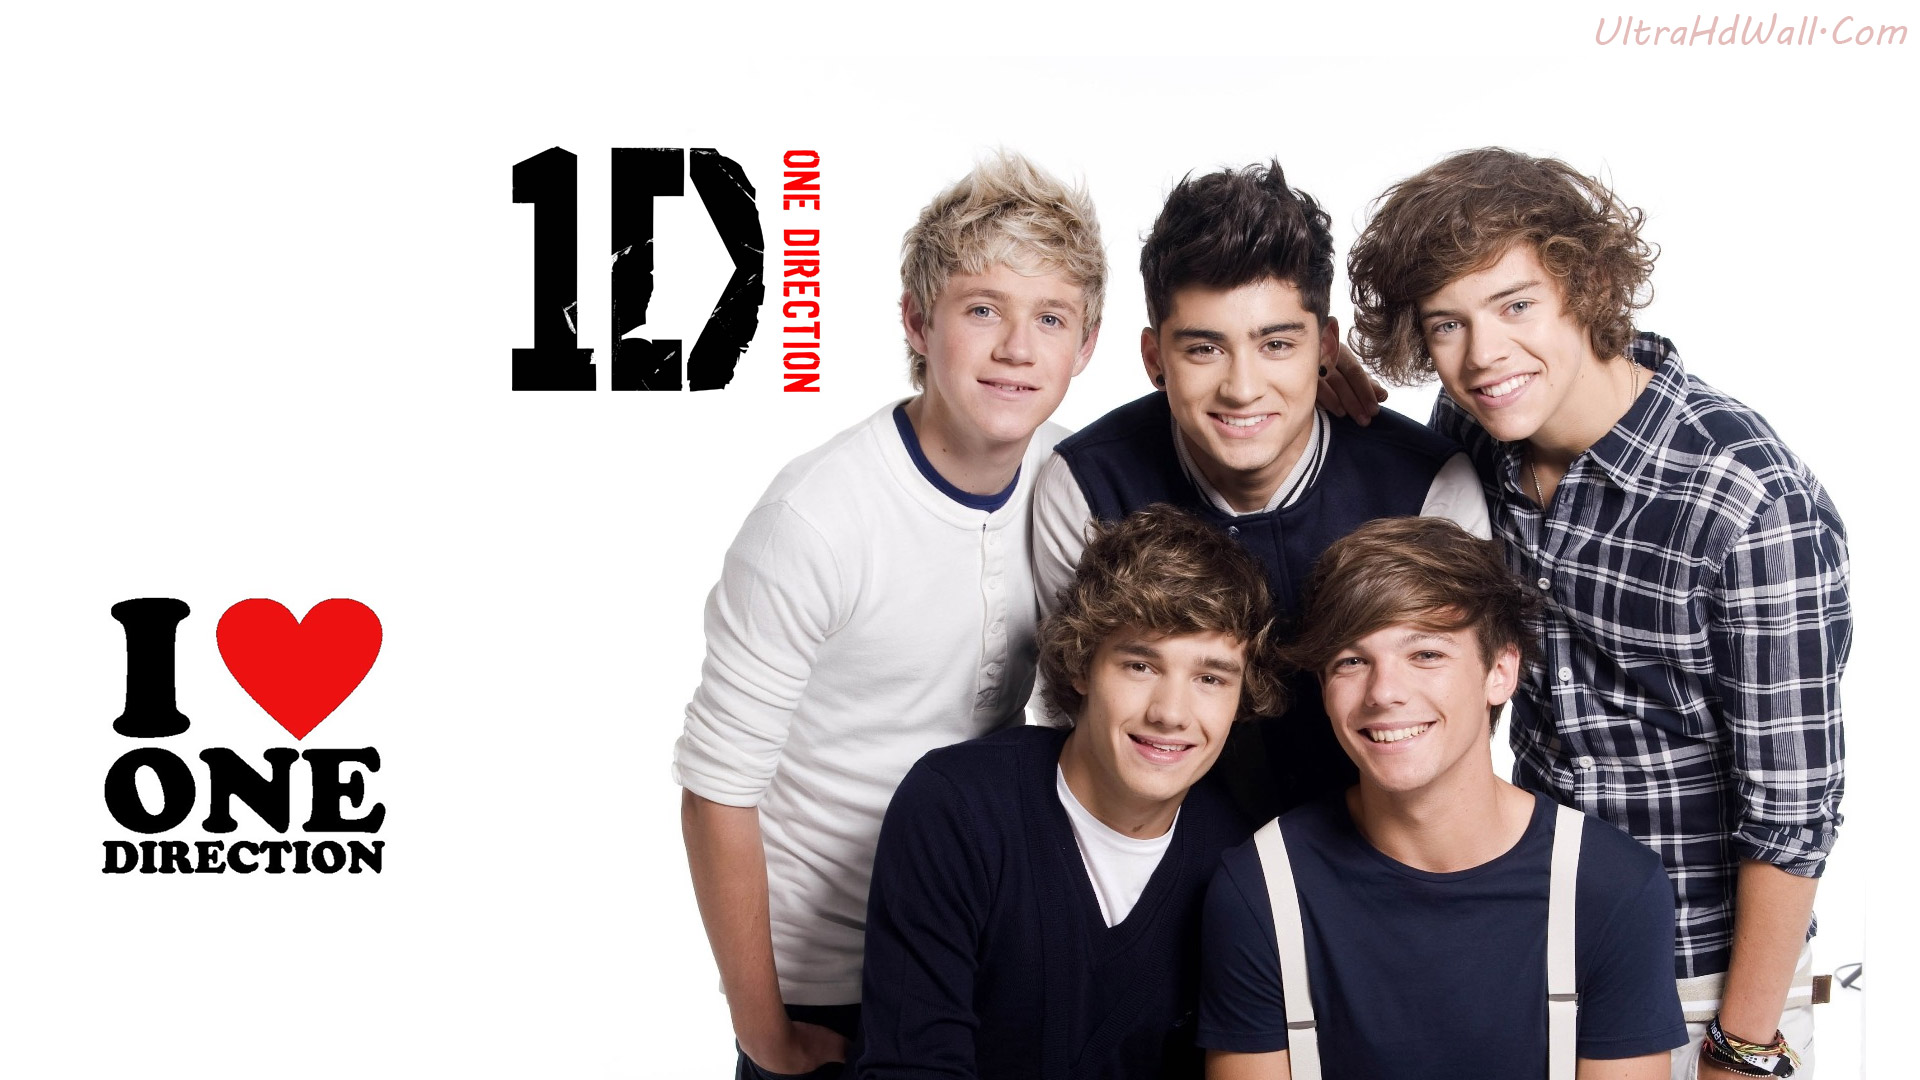 One Direction Wallpaper 1920x1080